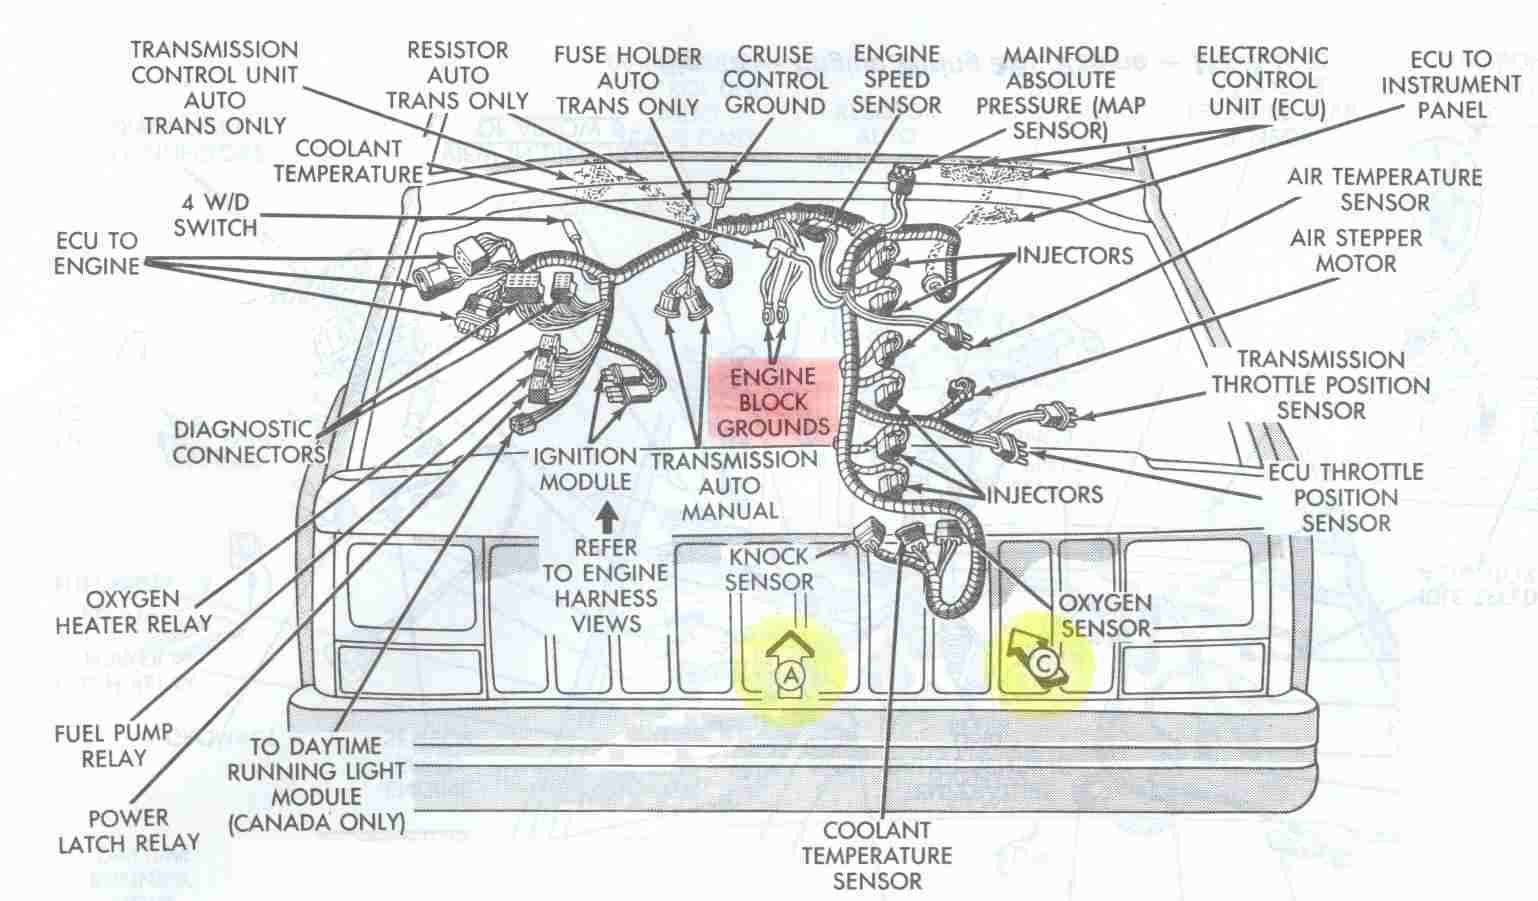 main fuse box cherokee xj wiring libraryengine bay schematic showing major electrical ground points for 4 [ 1538 x 901 Pixel ]